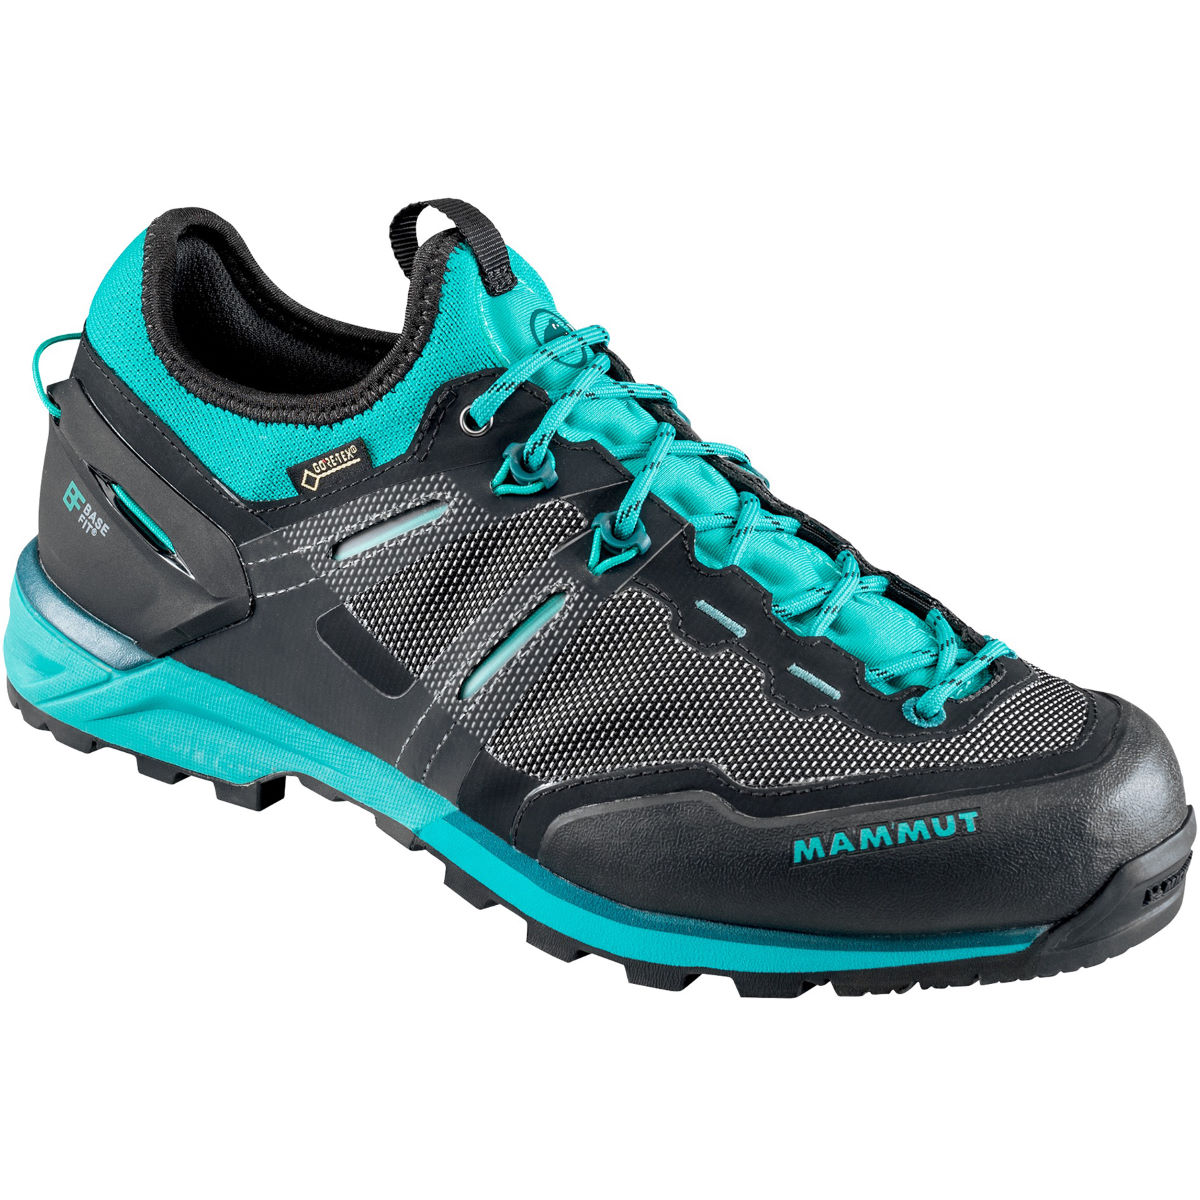 Mammut Alnasca Knit Low GTX Women Shoes - Zapatillas